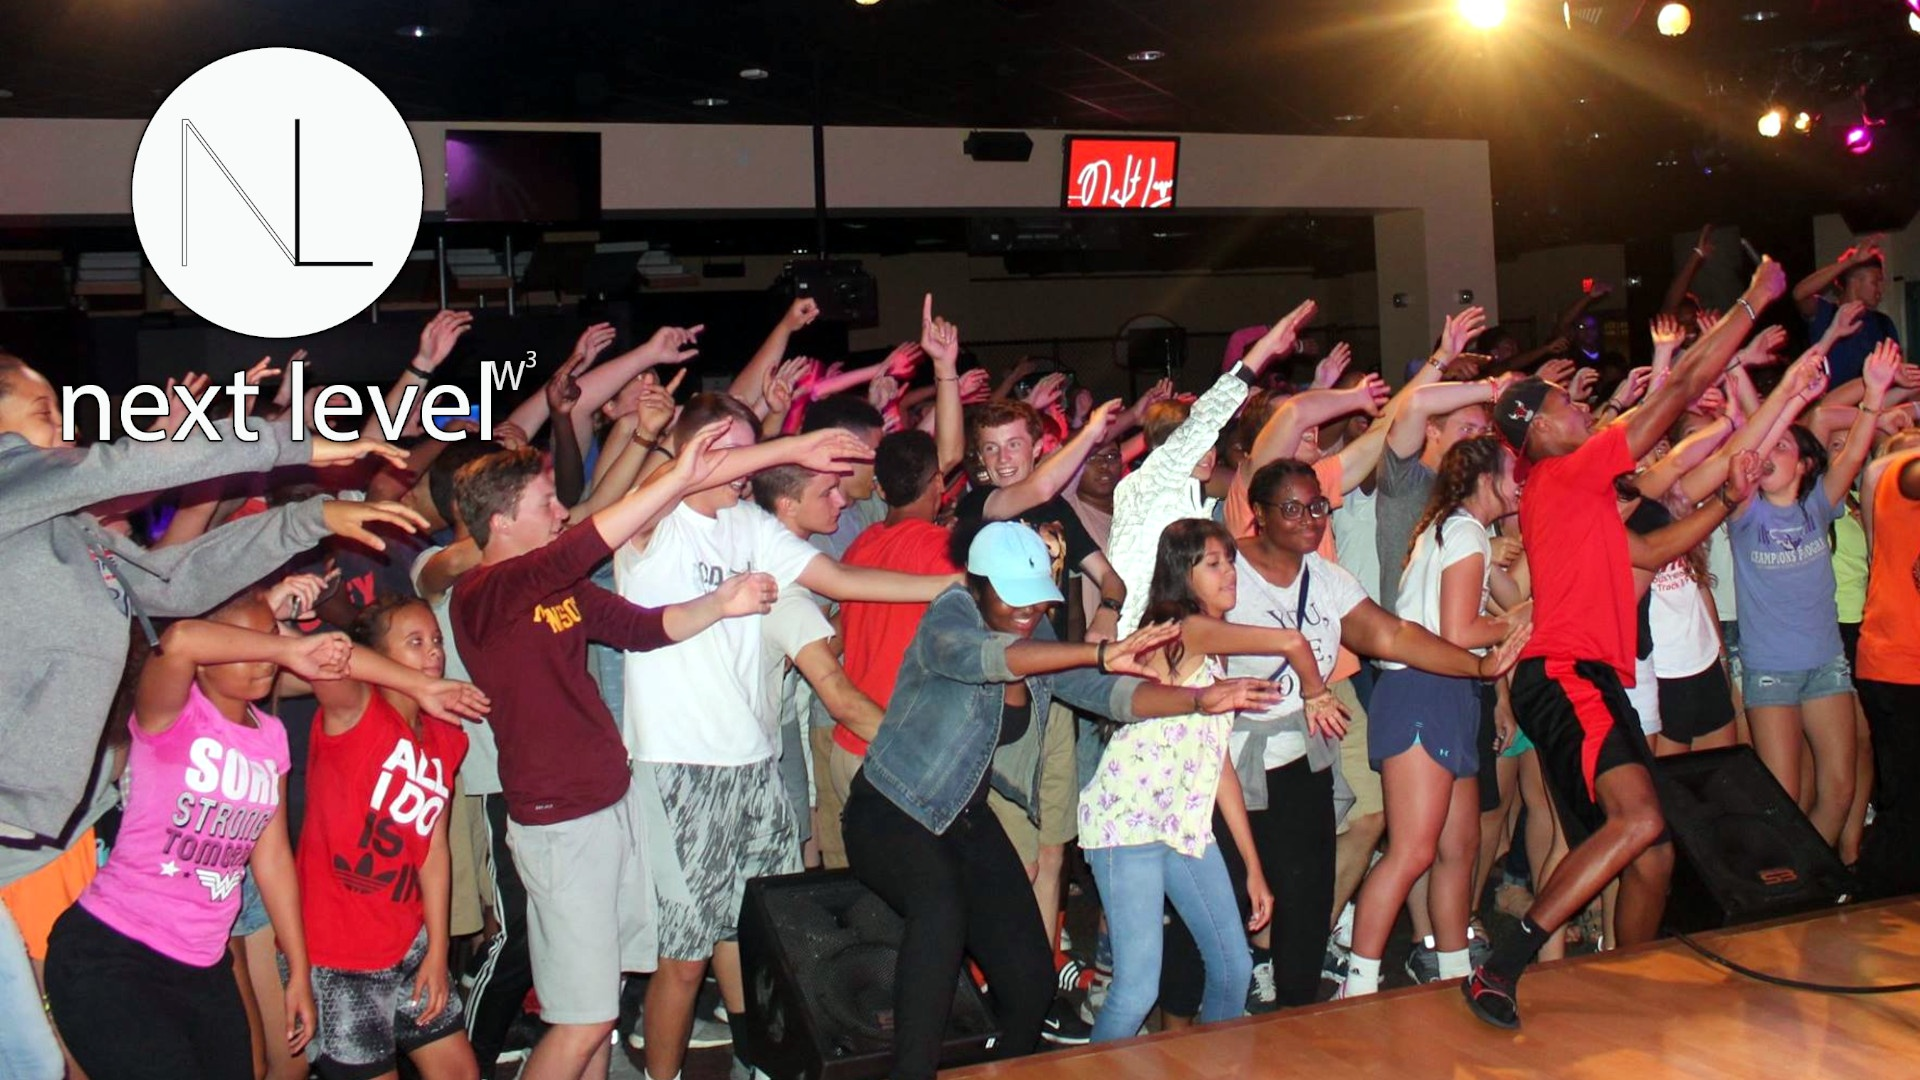 OCBF Next Level Youth worshipping in the education center - logo included